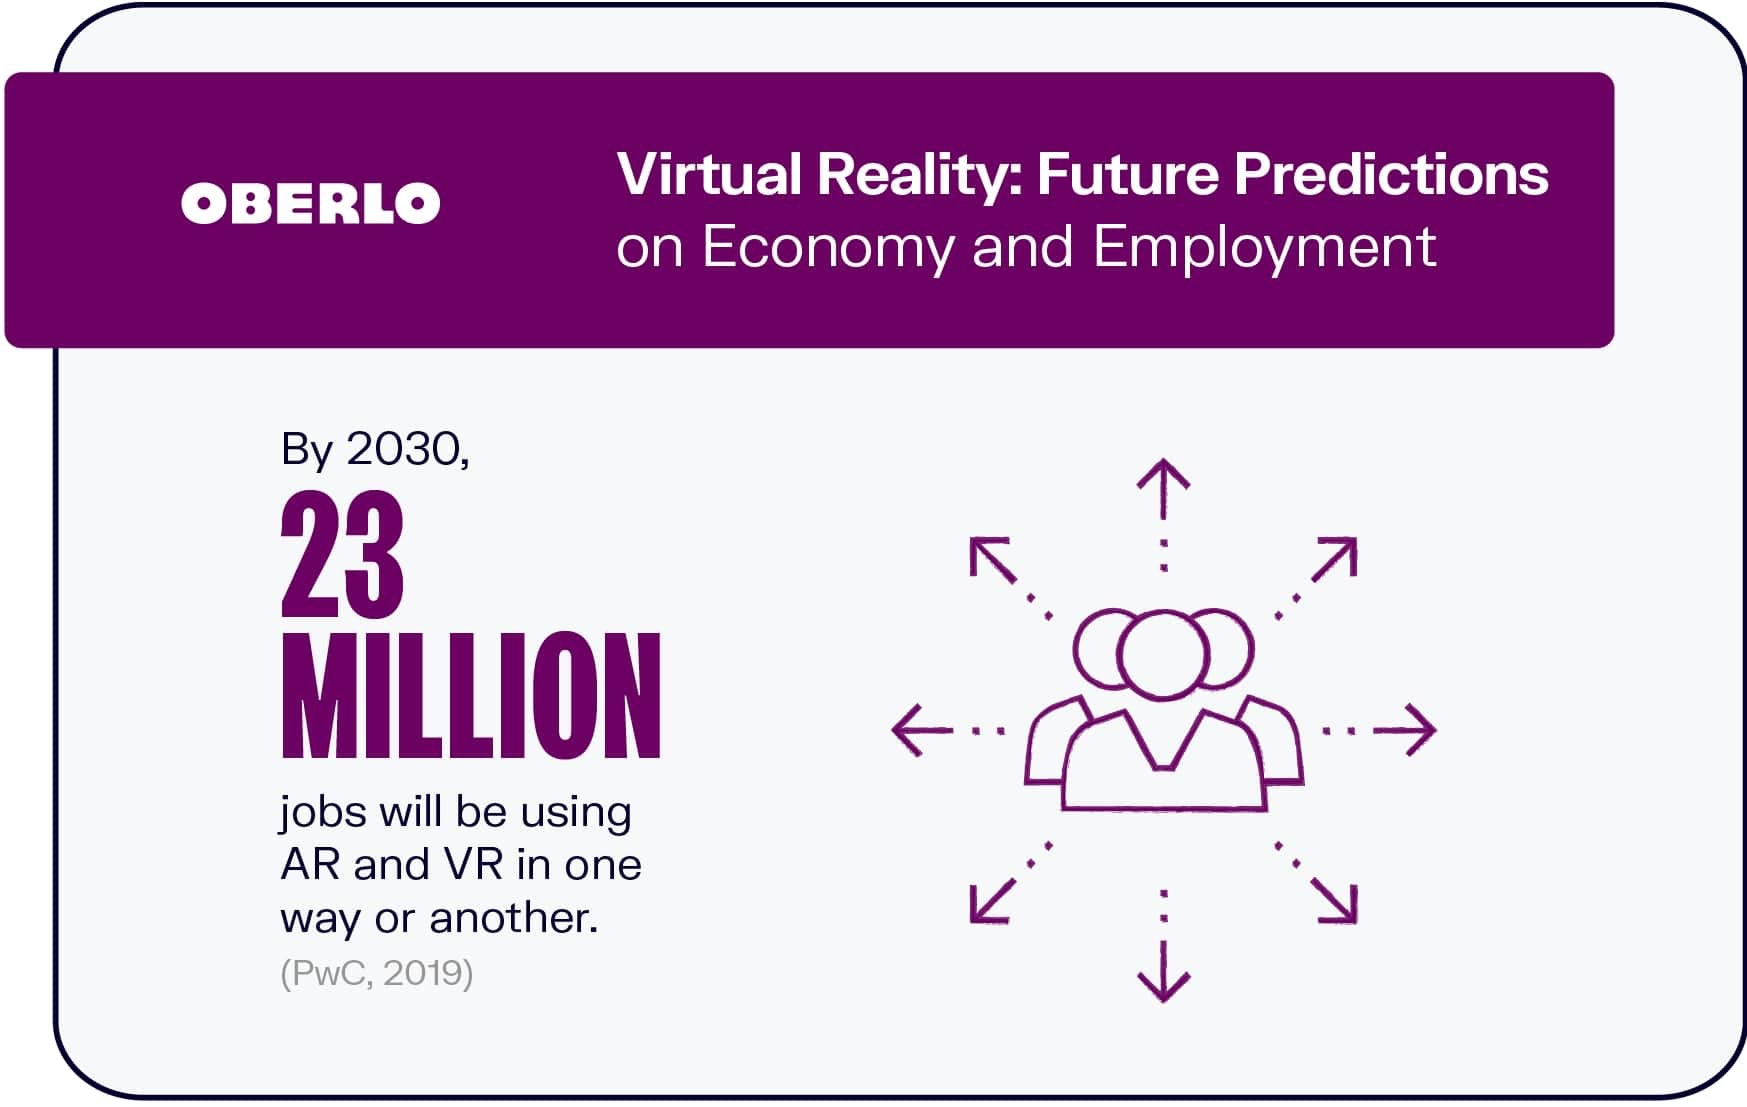 Virtual Reality: Future Predictions on Economy and Employment